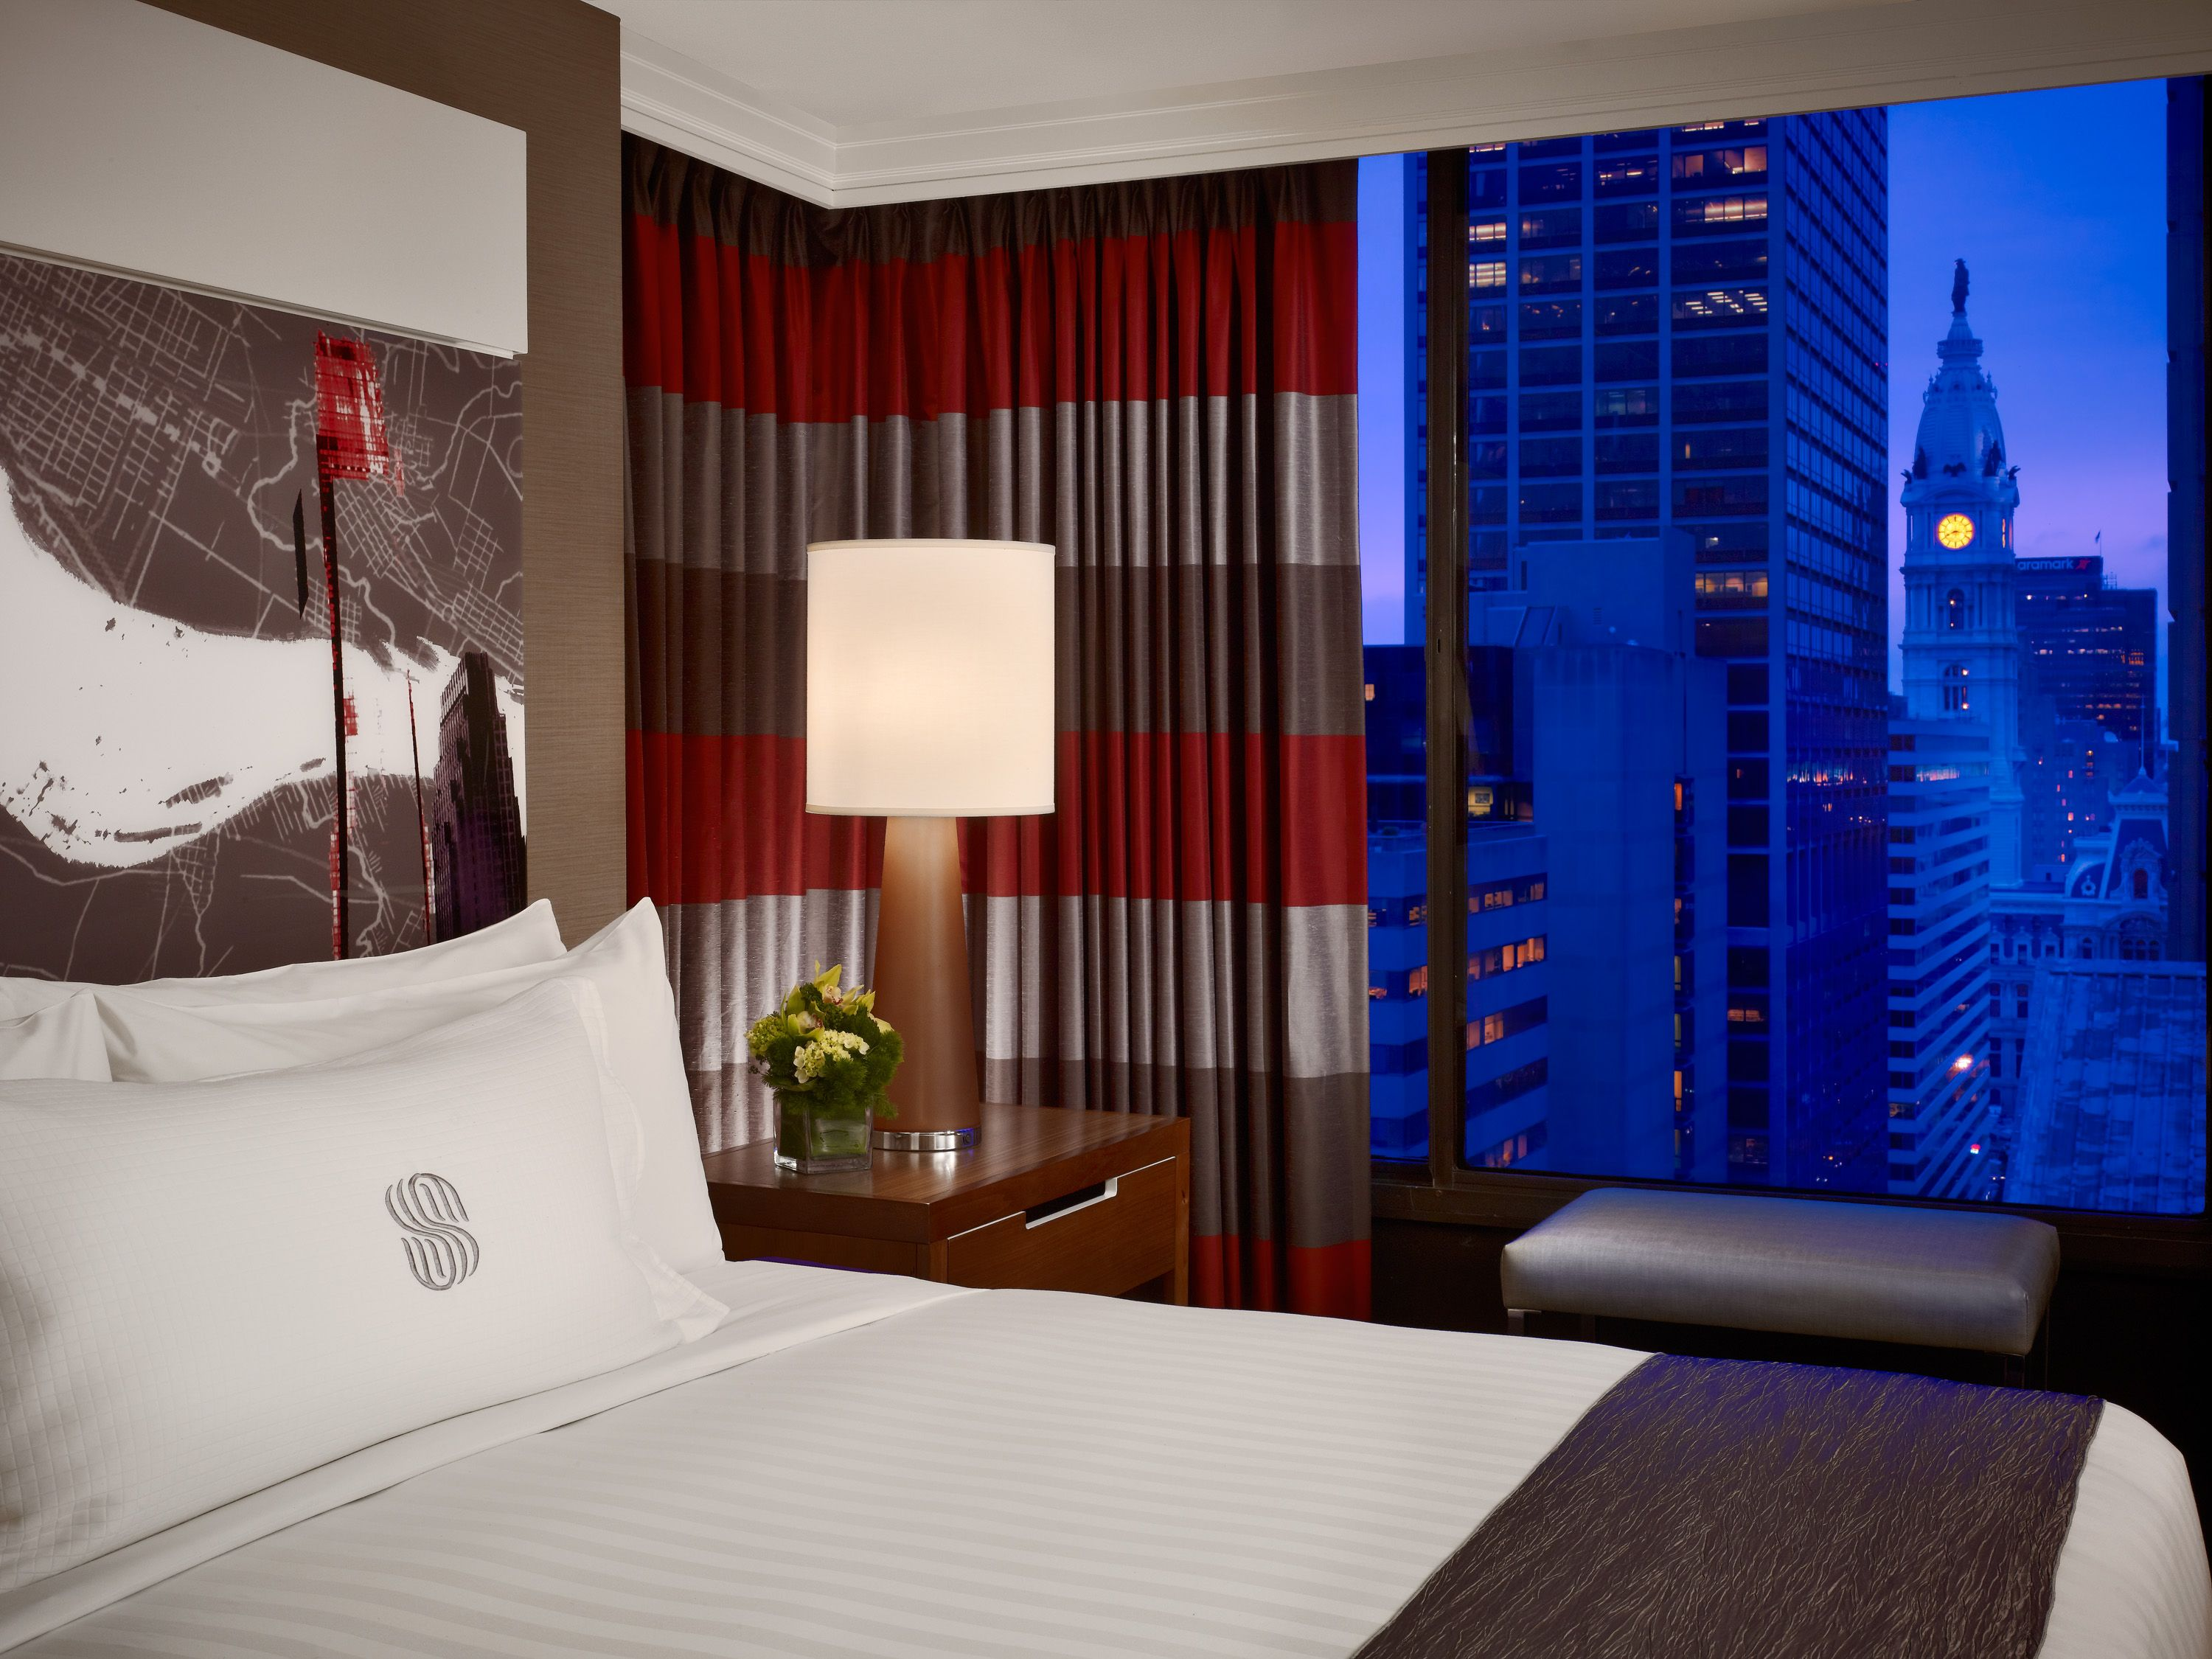 Hotels In Philadelphia Kimpton Hotel Monaco 5 Star Luxury Shun He Whether You